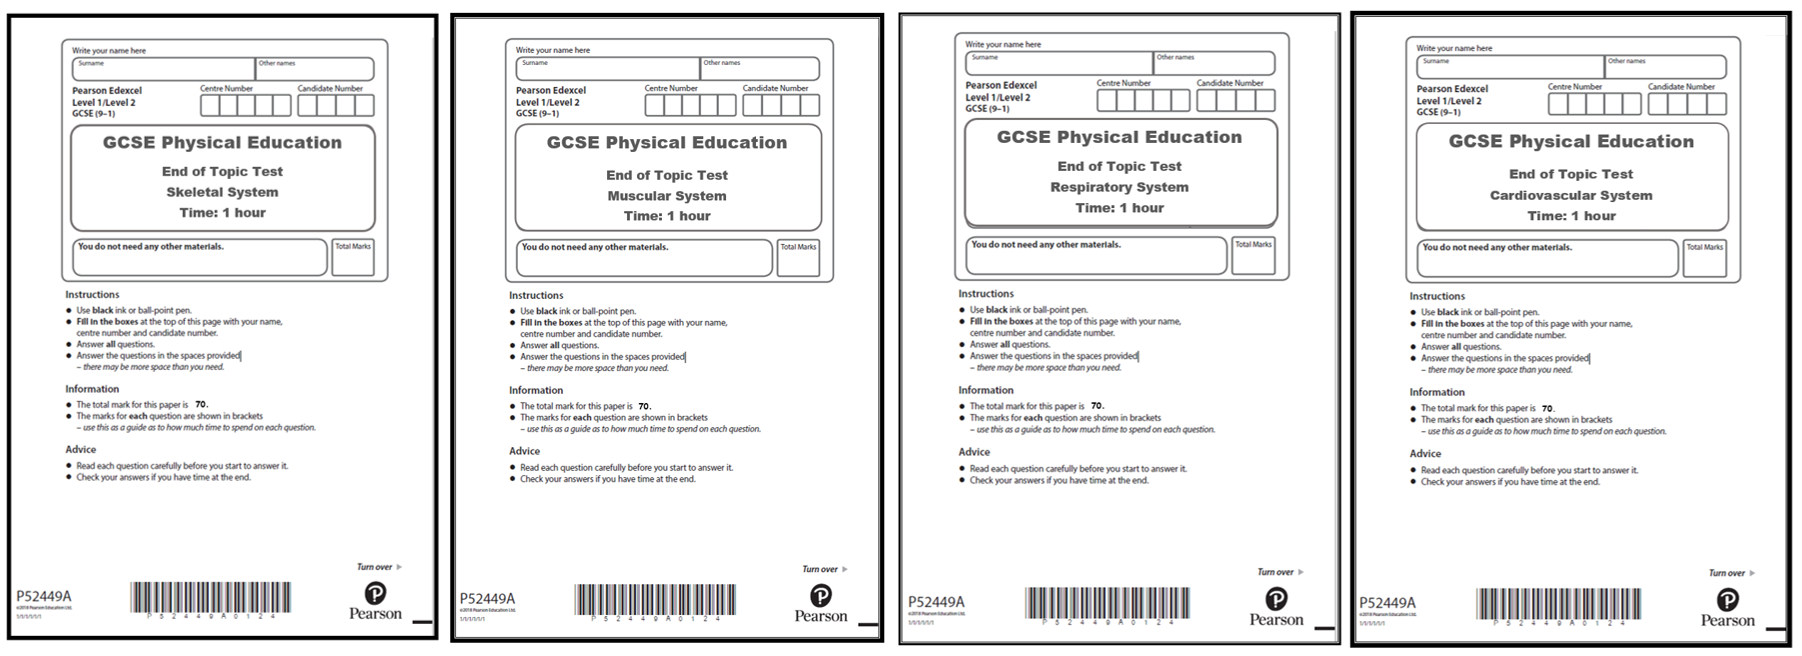 GCSE PE - Edexcel (9-1) - End of Topic Tests (Anatomy and Physiology)